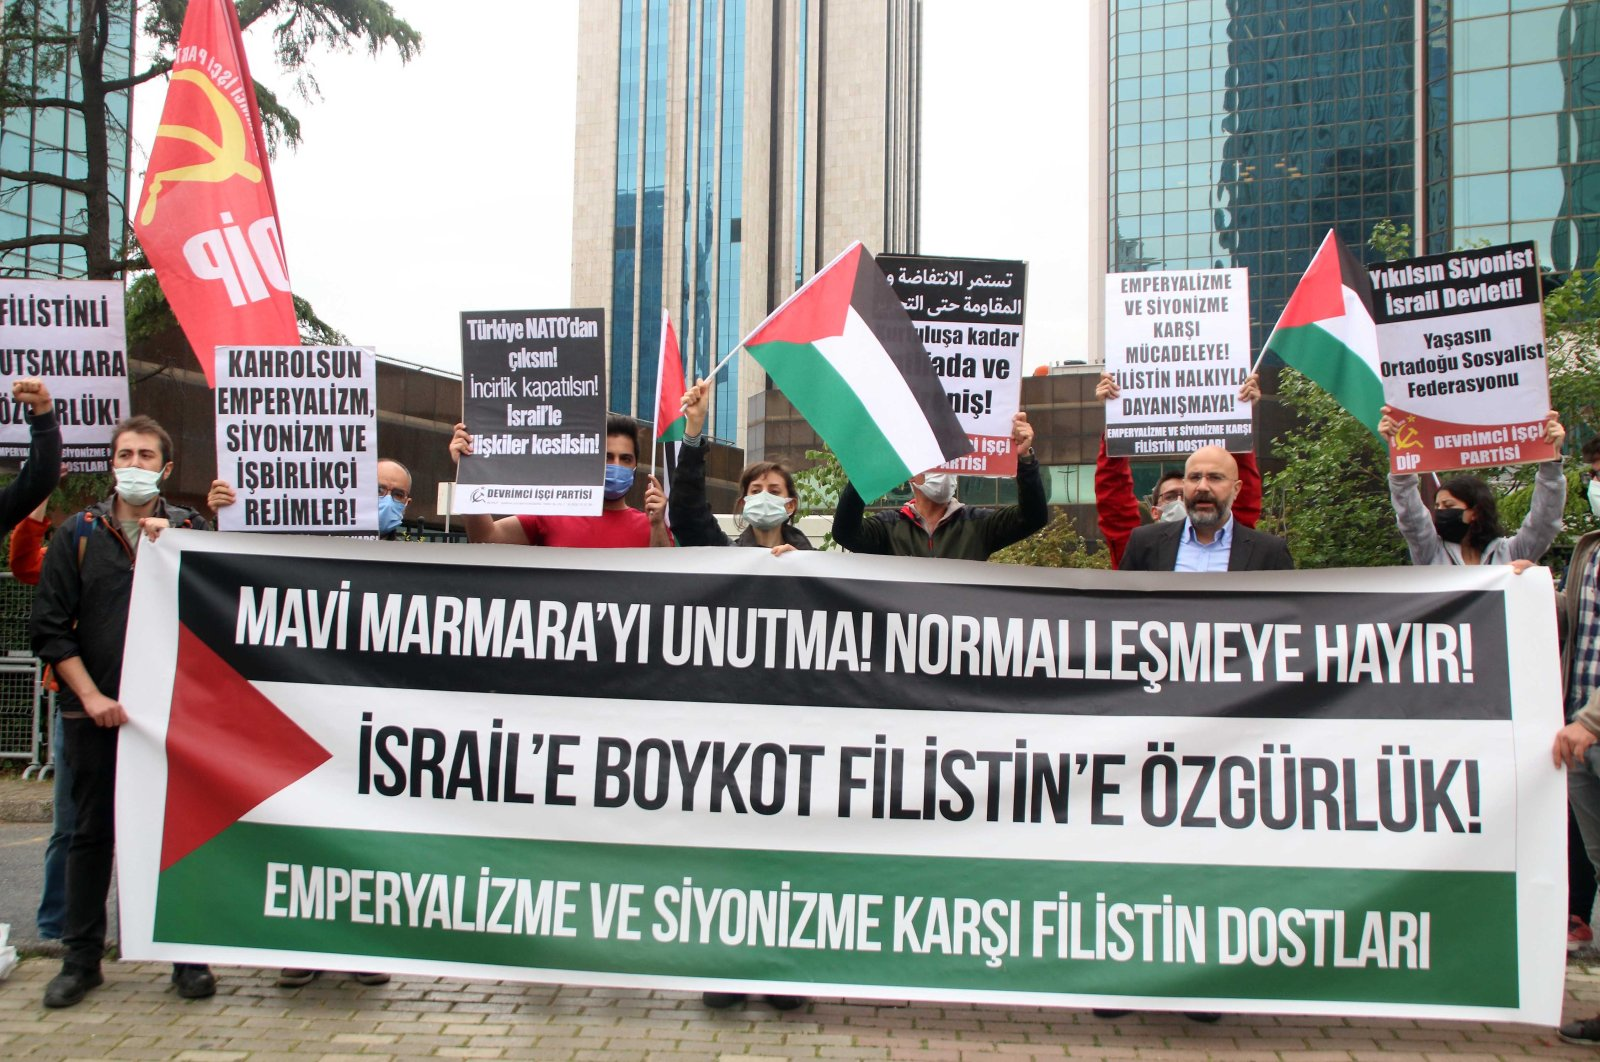 Protesters hold banners urging boycott of the Israeli government for oppressing Palestinians on the 11th anniversary of Mavi Marmara incident in front of the Israeli Consulate in Istanbul, Turkey, May 31, 2021. (DHA Photo)